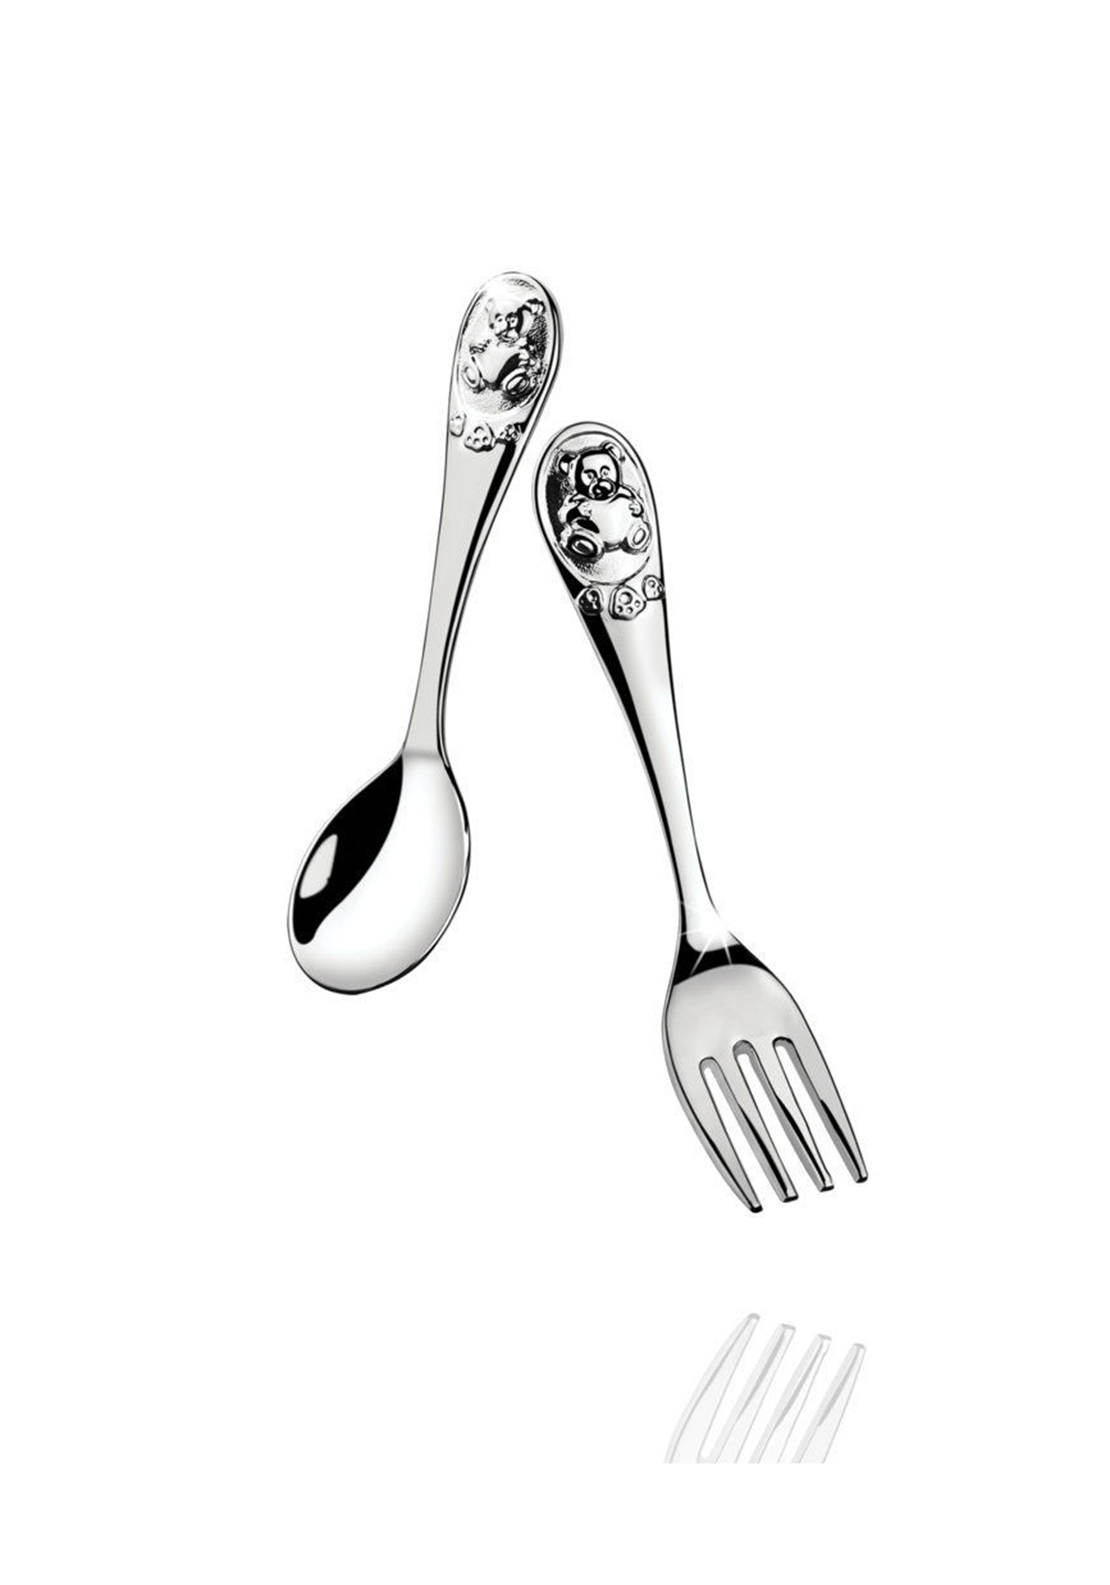 NEWBRIDGE TEDDY BEAR FORK&SPOON SET